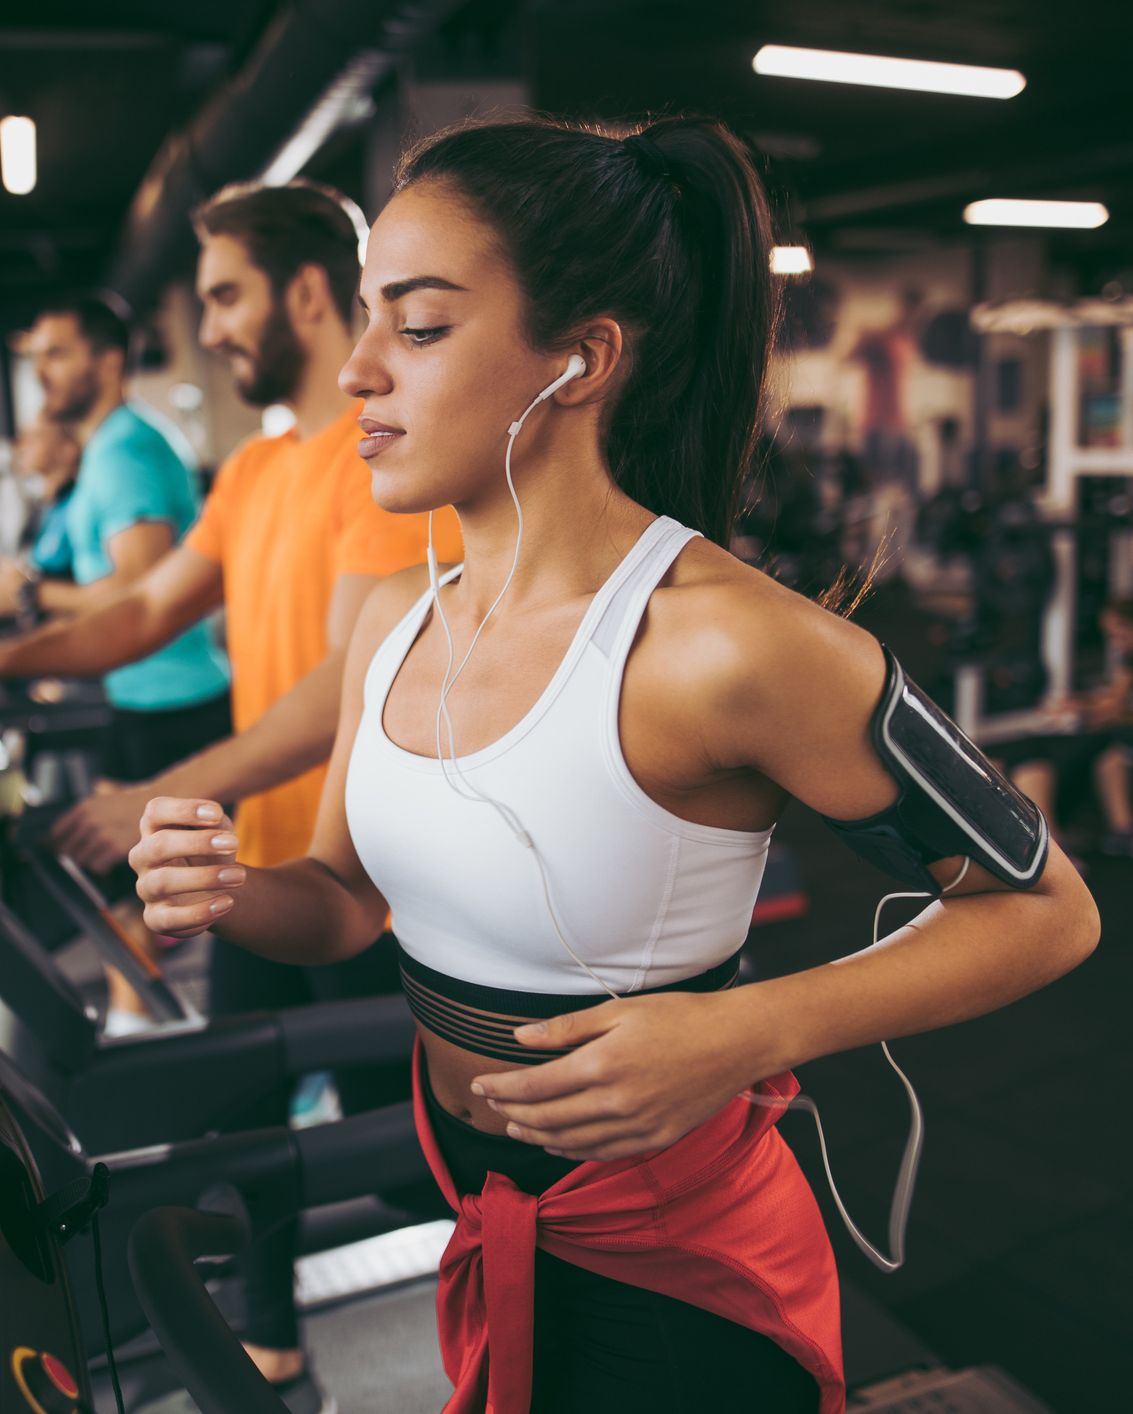 Avoid slamming your feet on the treadmill. If you can hear the slamming of your stride on the treadmill over the music in your headphones, that's a clear indication that you need to reevaluate your running form.